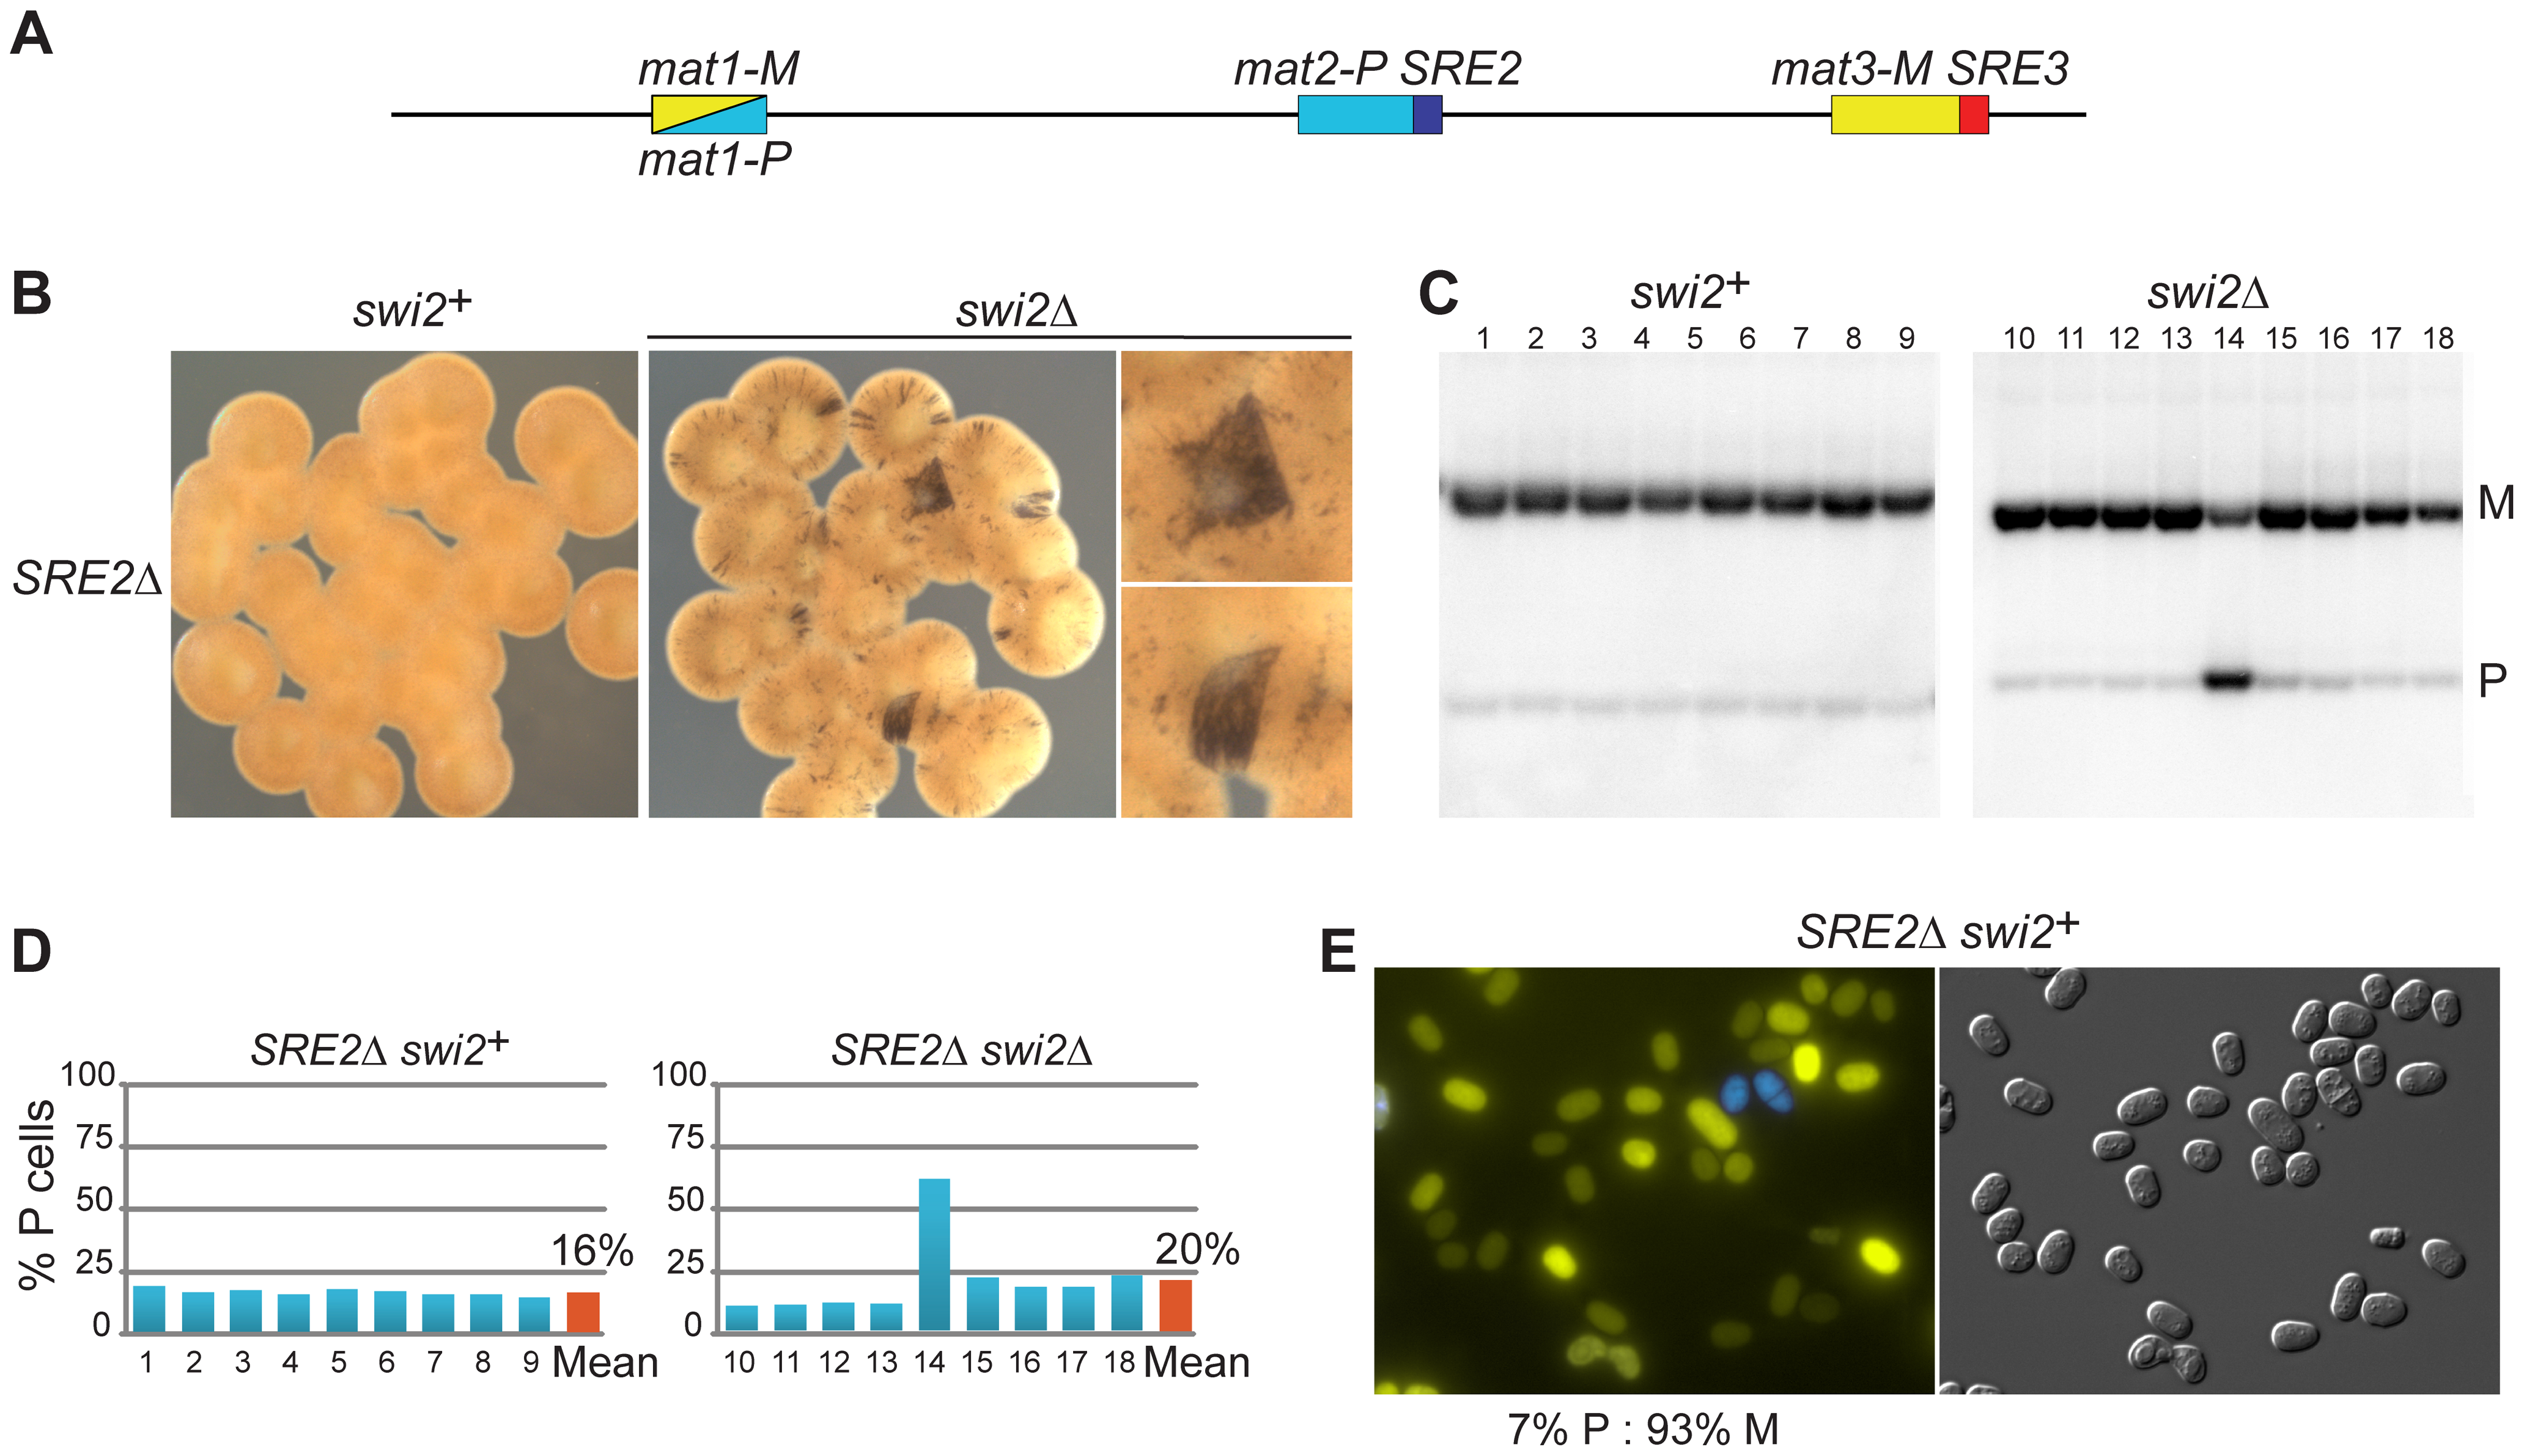 Deletion of SRE2 reduces use of <i>mat2-P</i>.